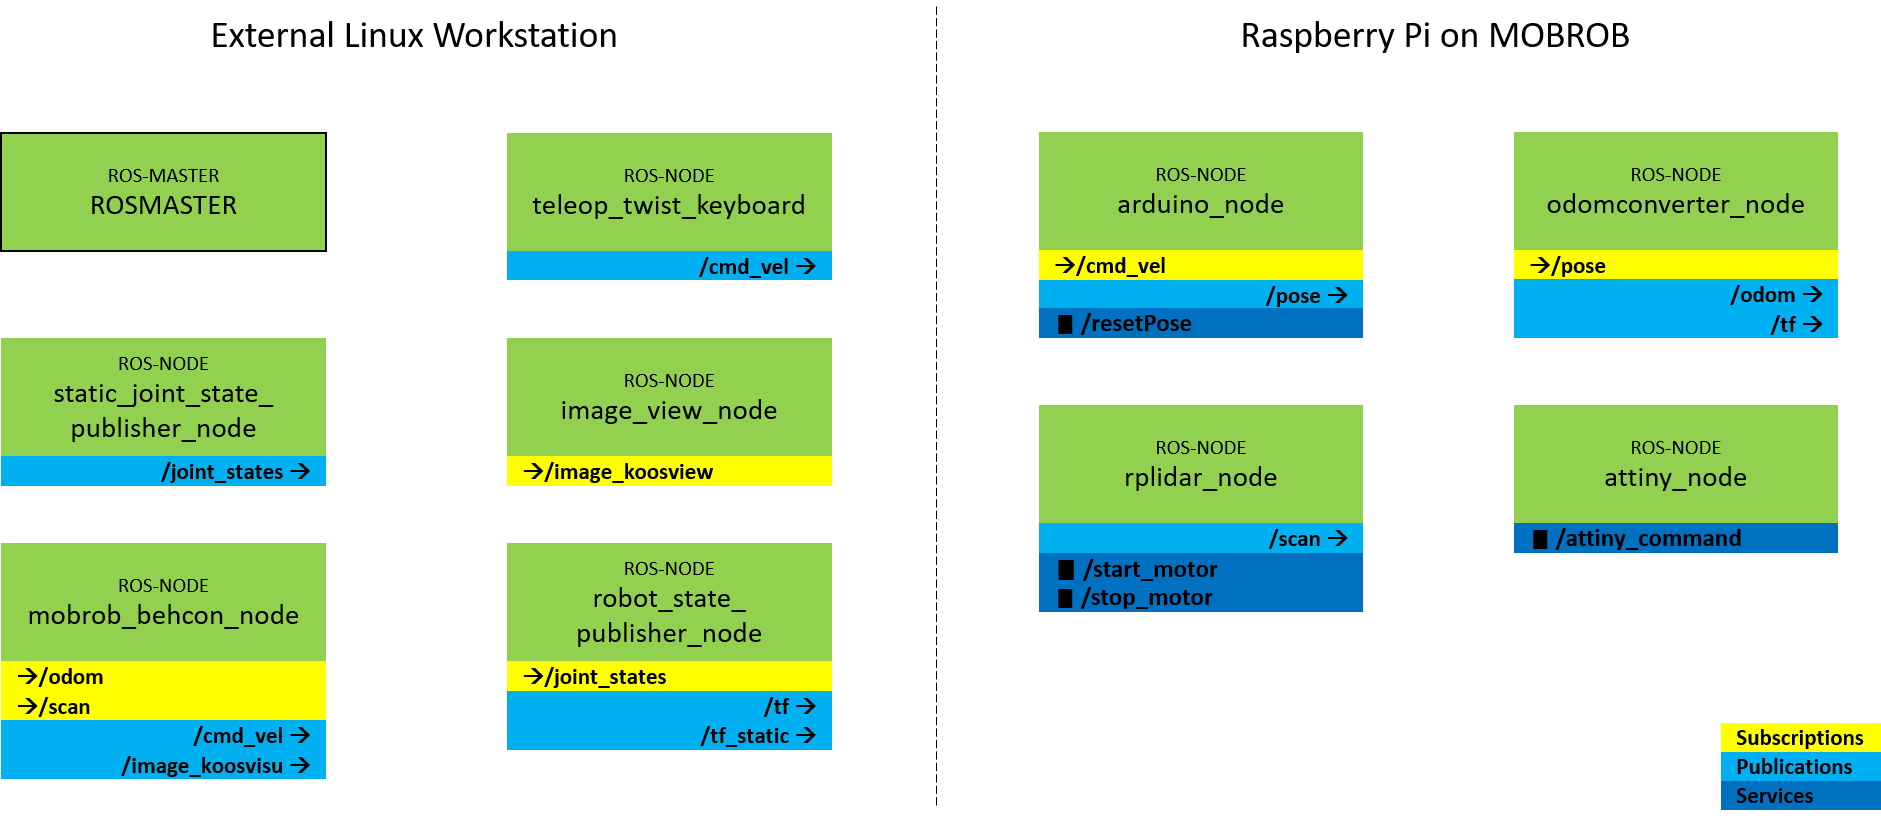 Overview of the ROS nodes and its subscriptions, publications and services